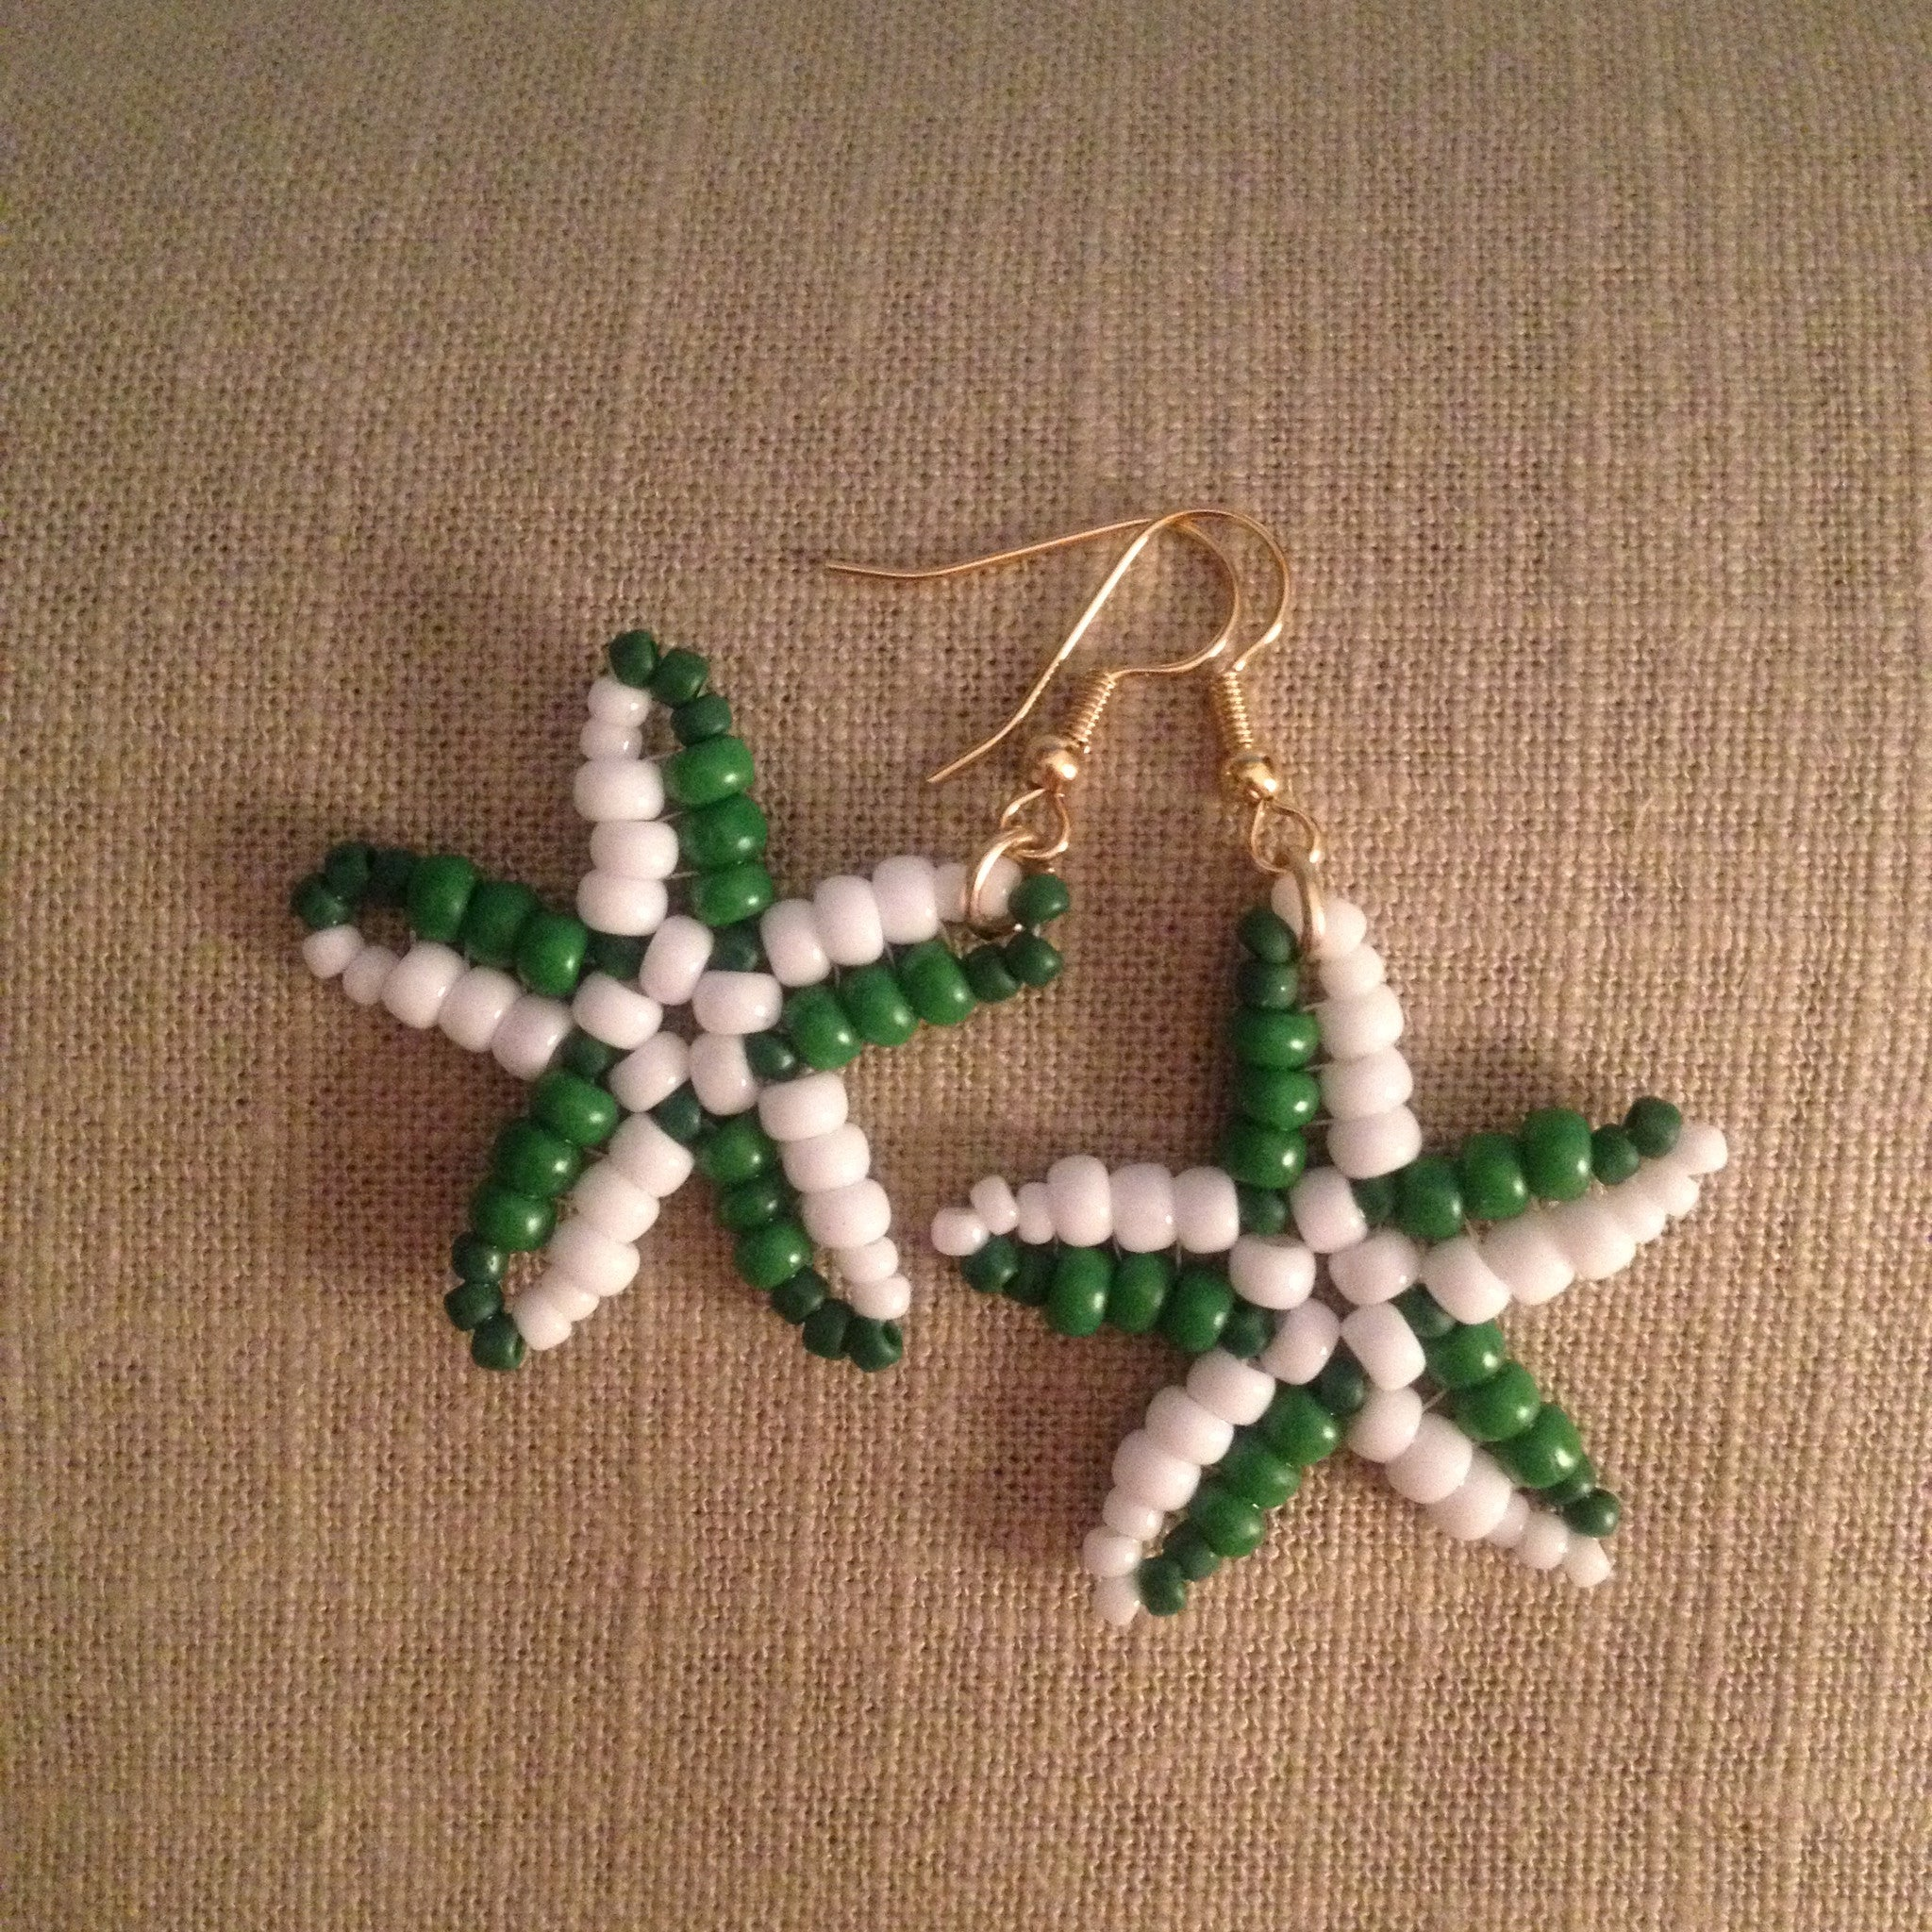 Starfish beaded hand made earrings kelly green white resort cruise wear beachy fun